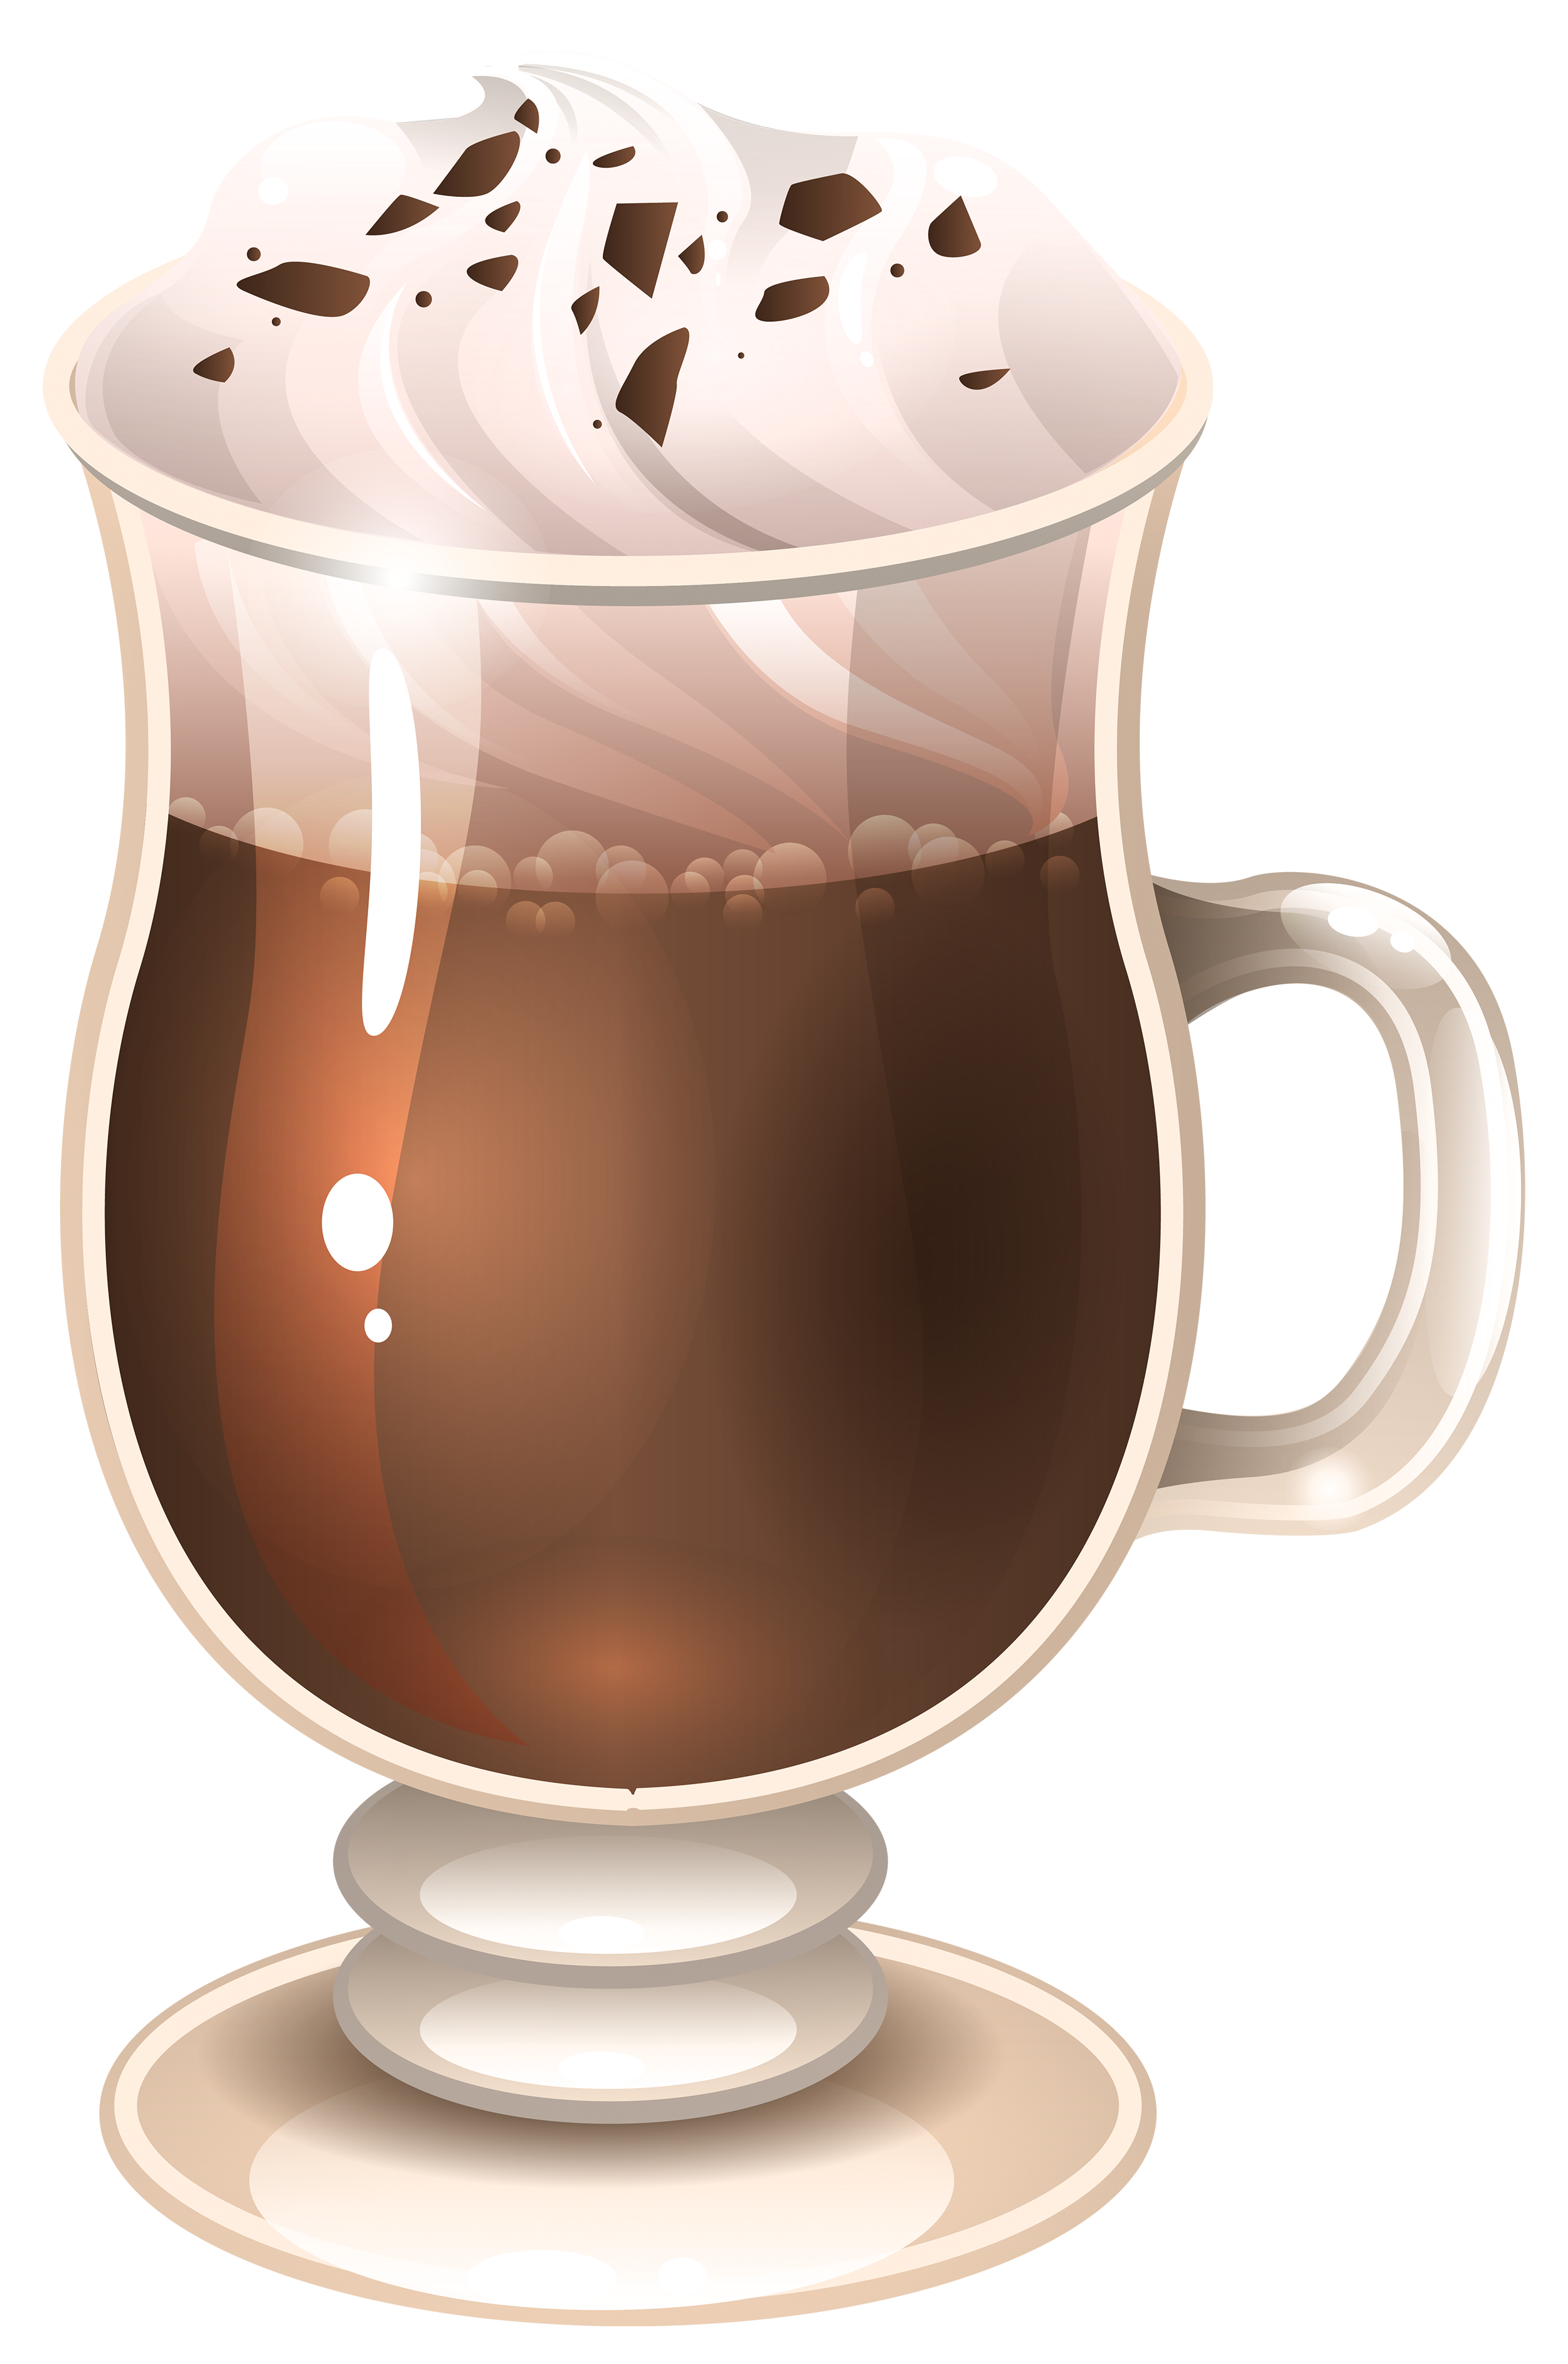 Free Latte Png, Download Free Clip Art, Free Clip Art on.